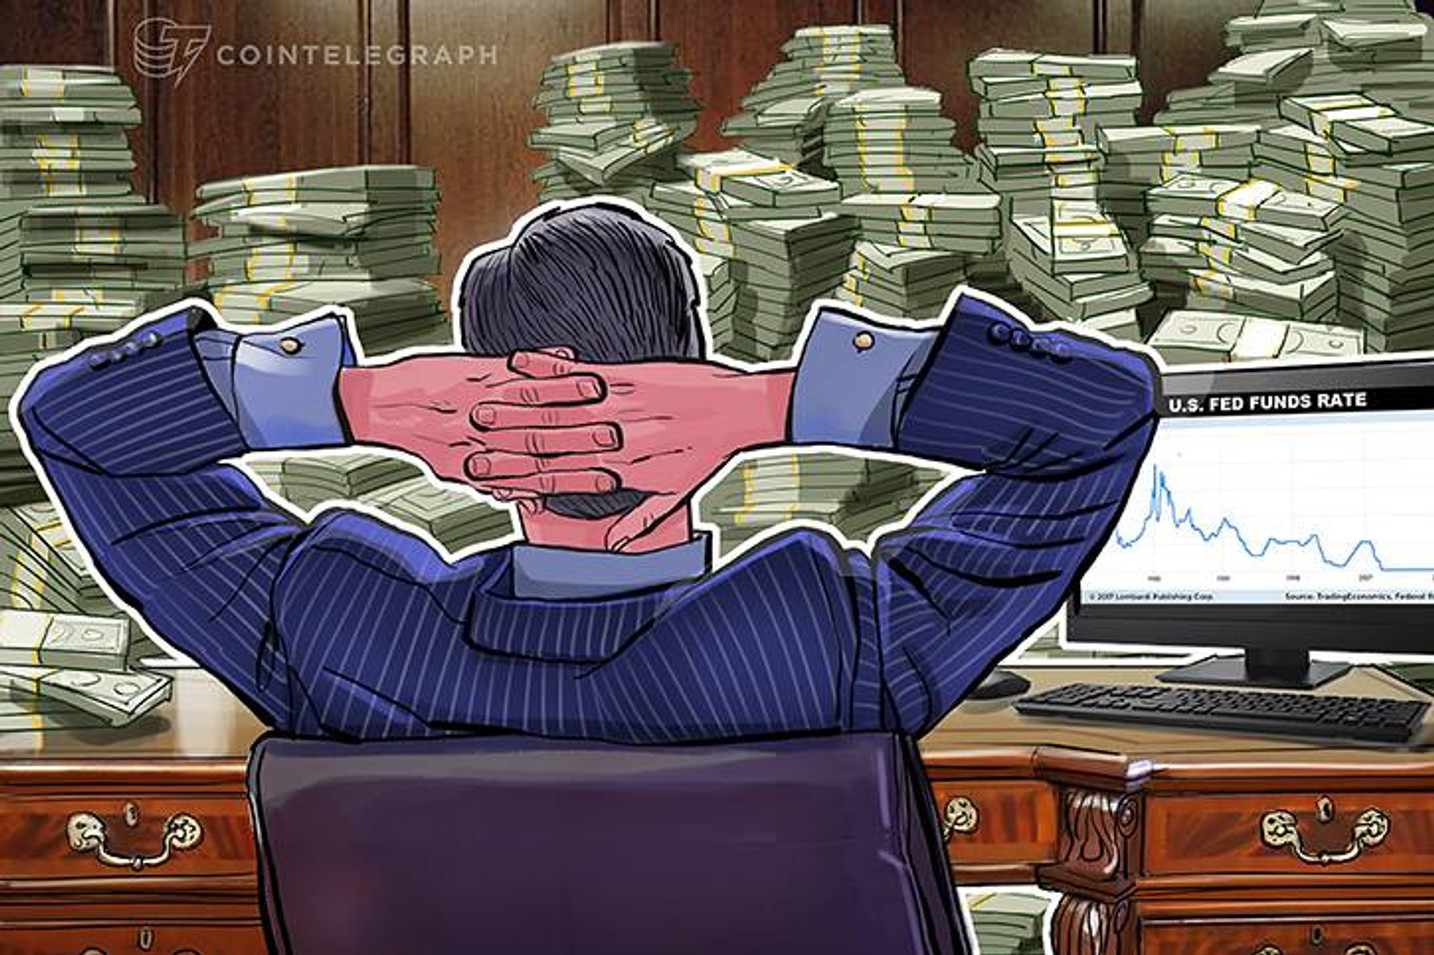 Crypto 'Doesn't Pass Test Of What A Currency Should Be', Says Likely NY Fed President